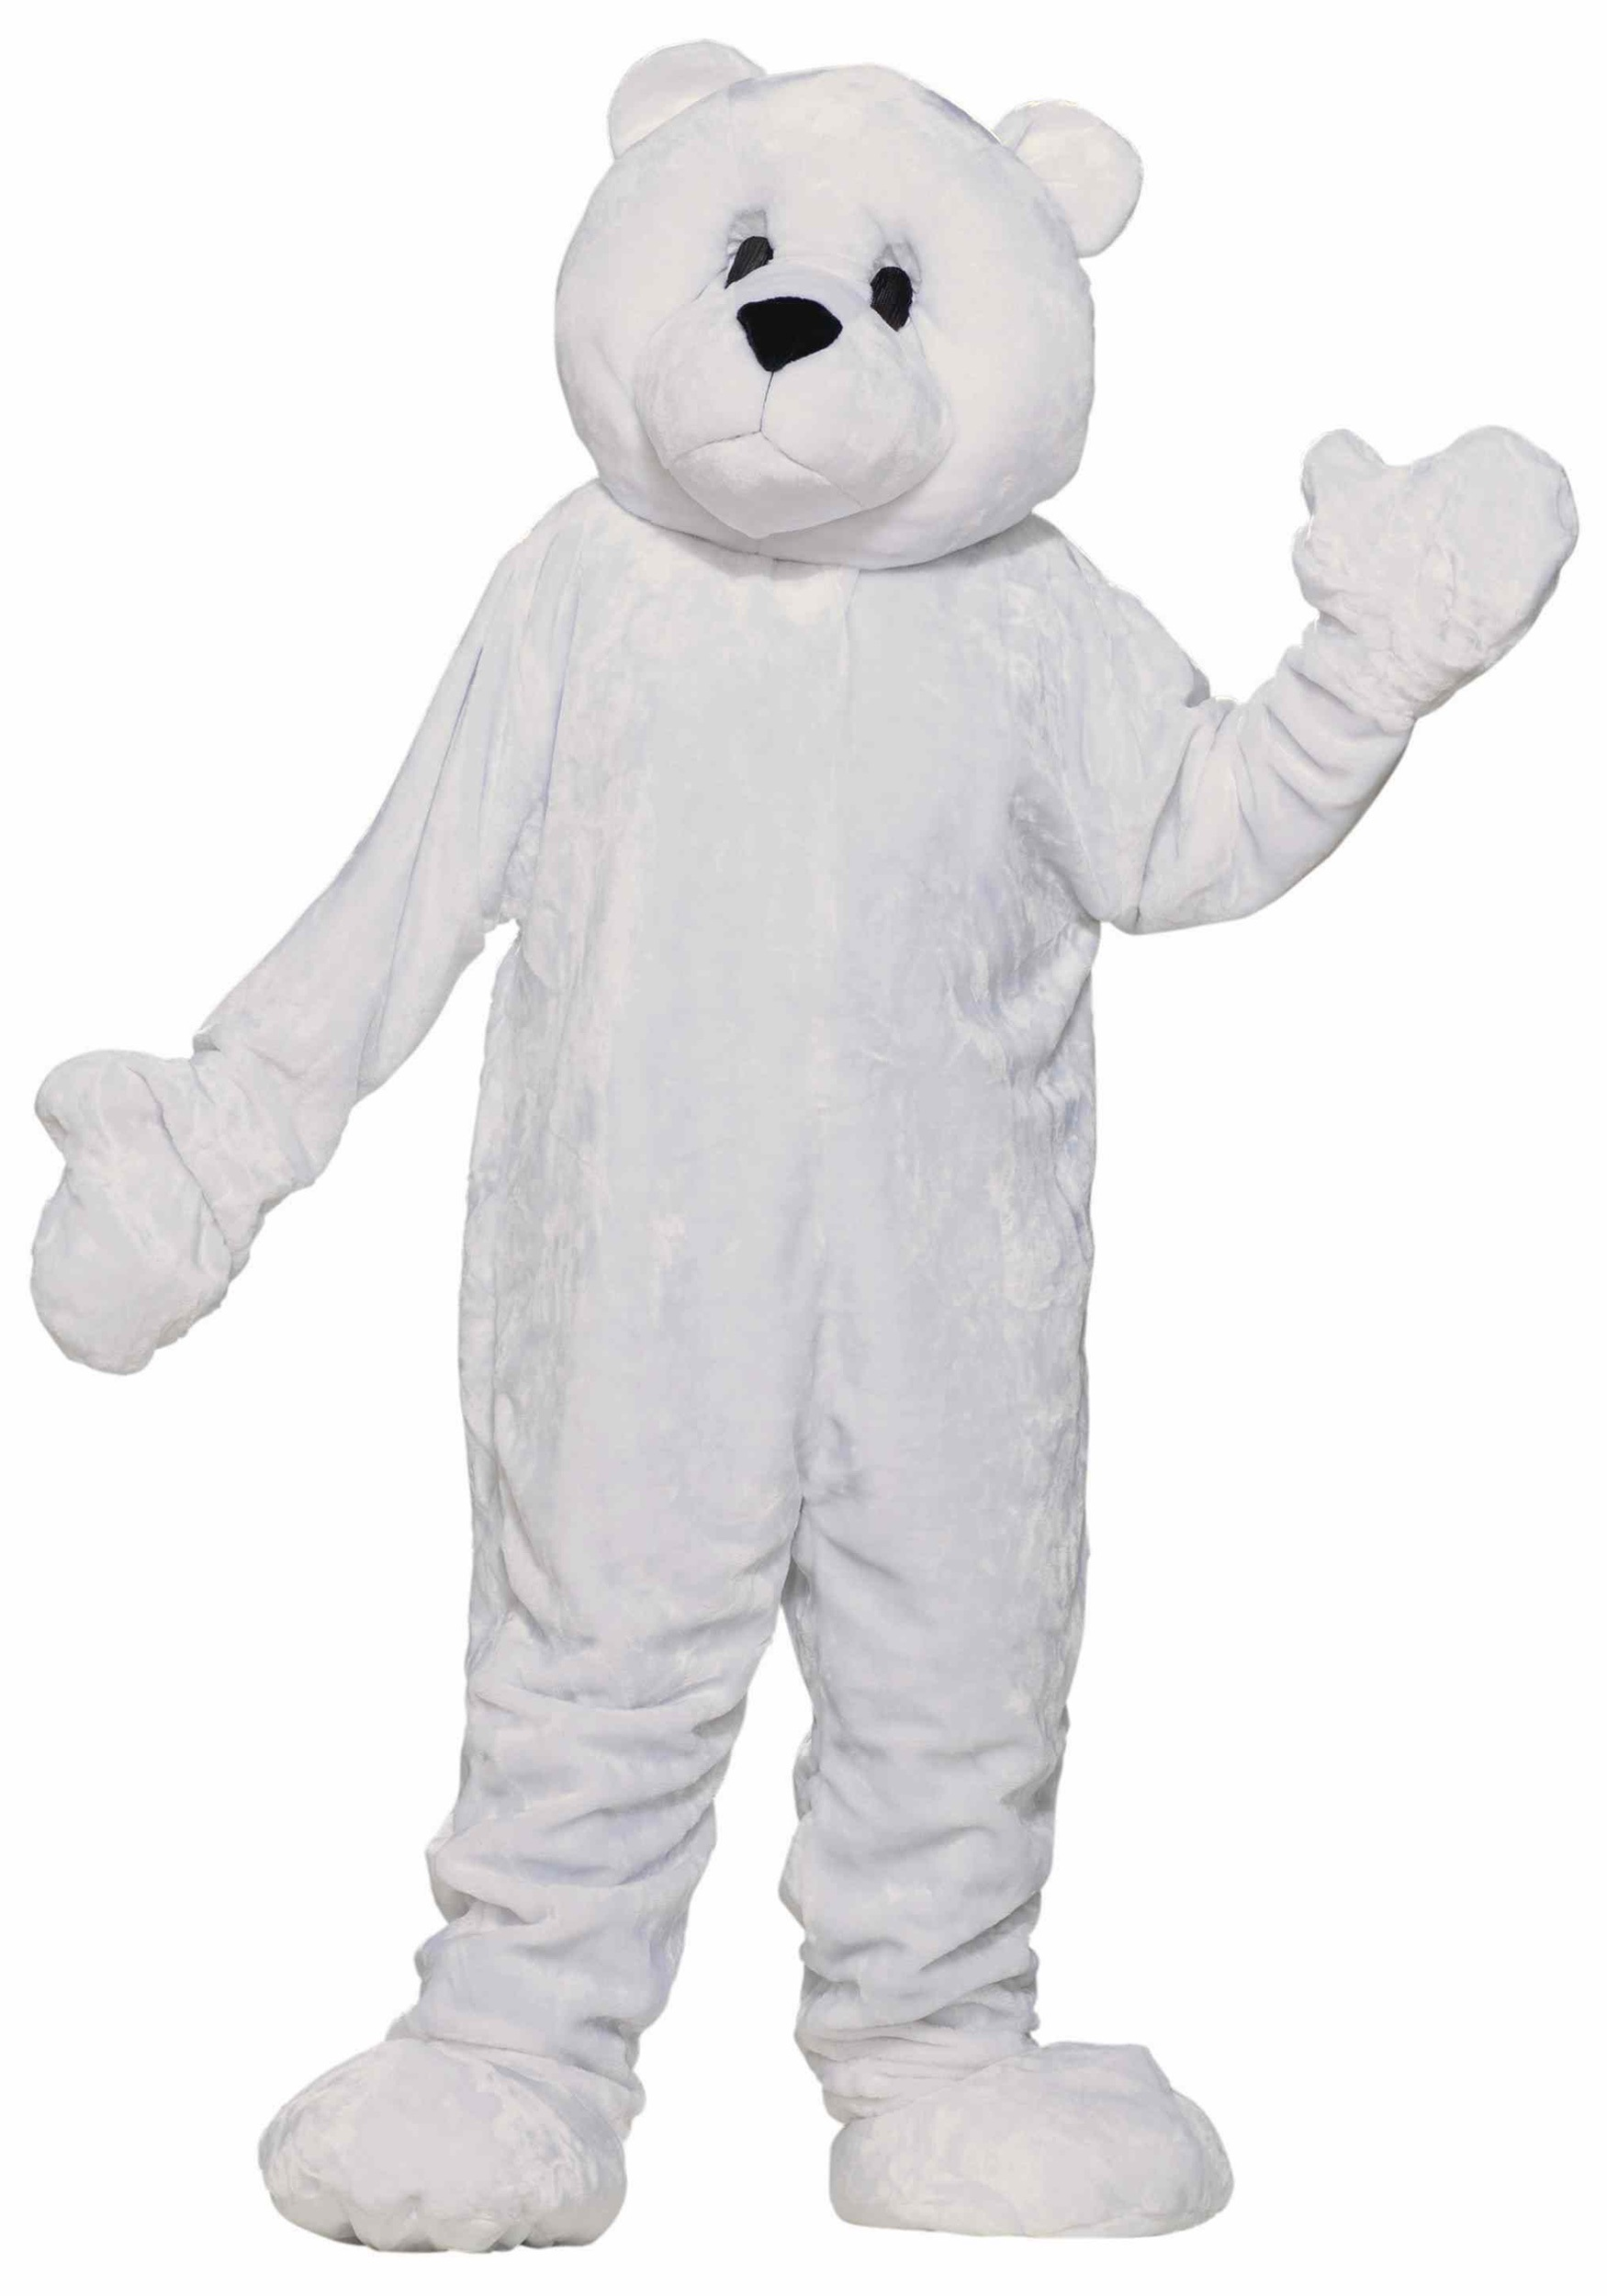 Adult Polar Bear Mascot Costume  sc 1 st  Halloween Costume Ideas & Adult Polar Bear Mascot Costume - Polar Bear Halloween Costume